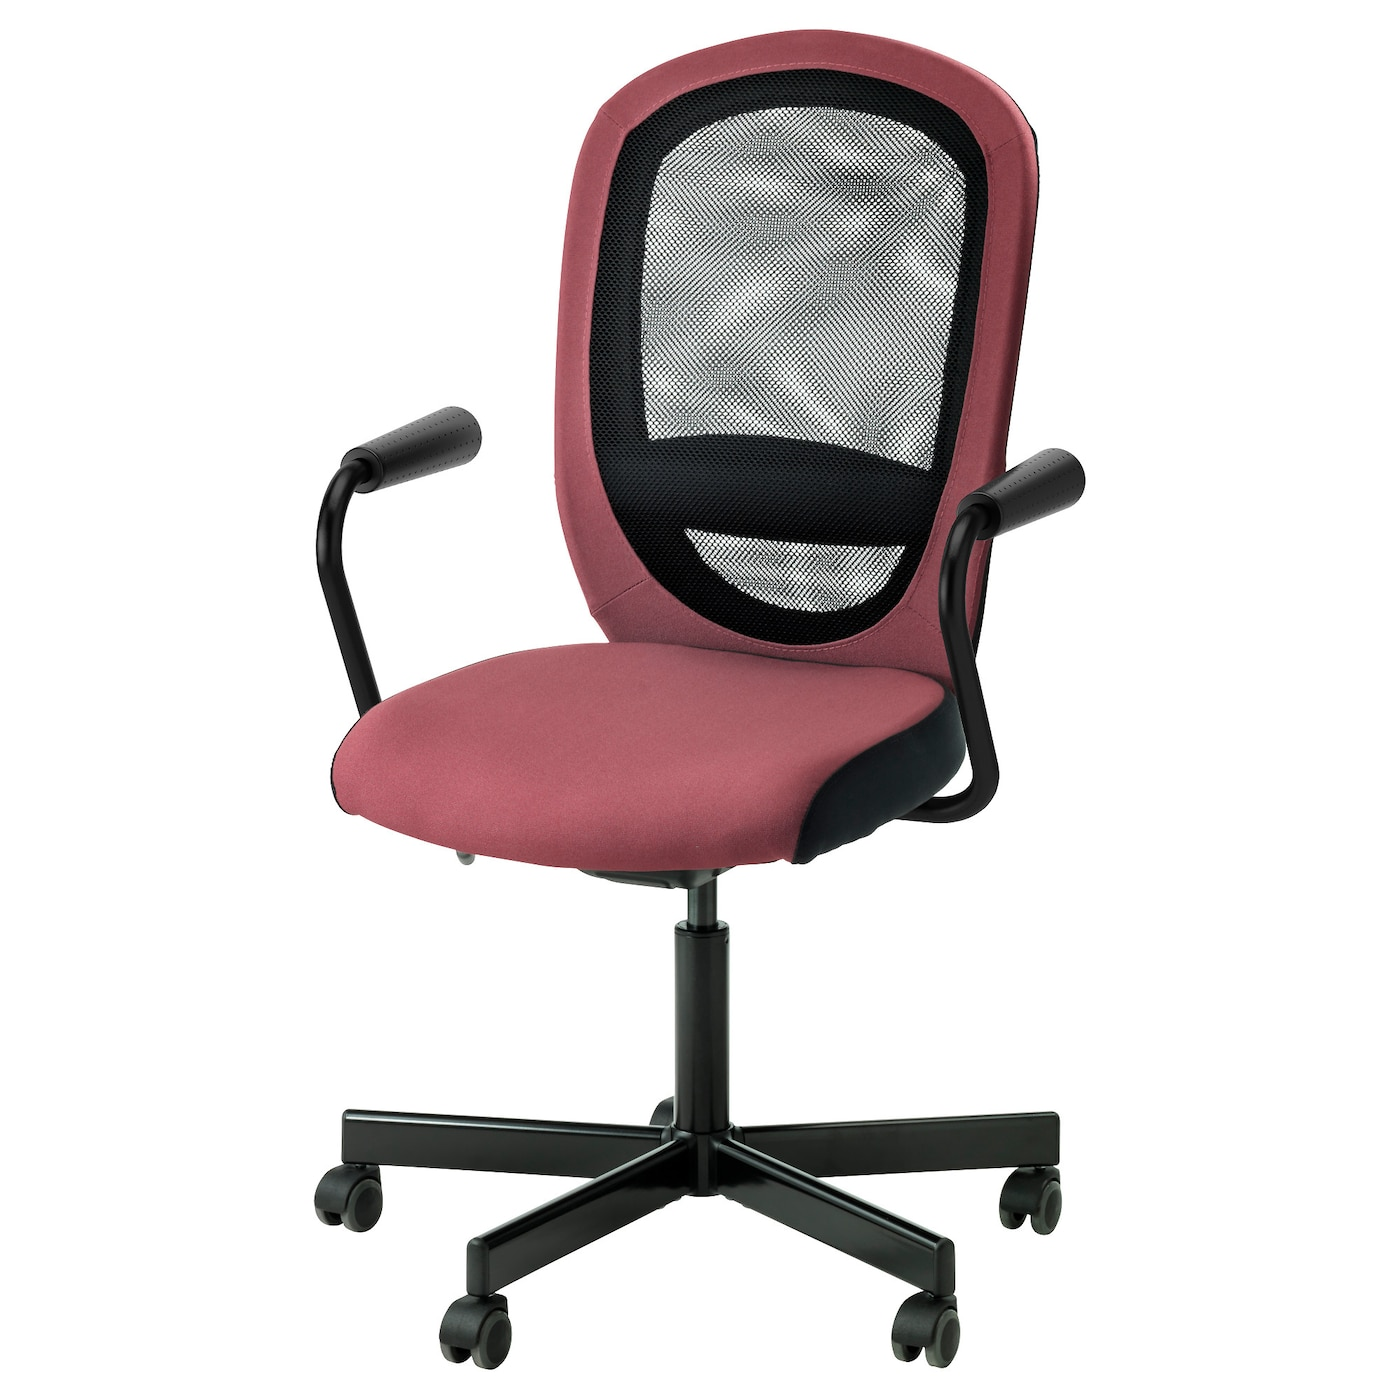 Swivel chairs spinning chairs ikea - Fauteuil ergonomique ikea ...